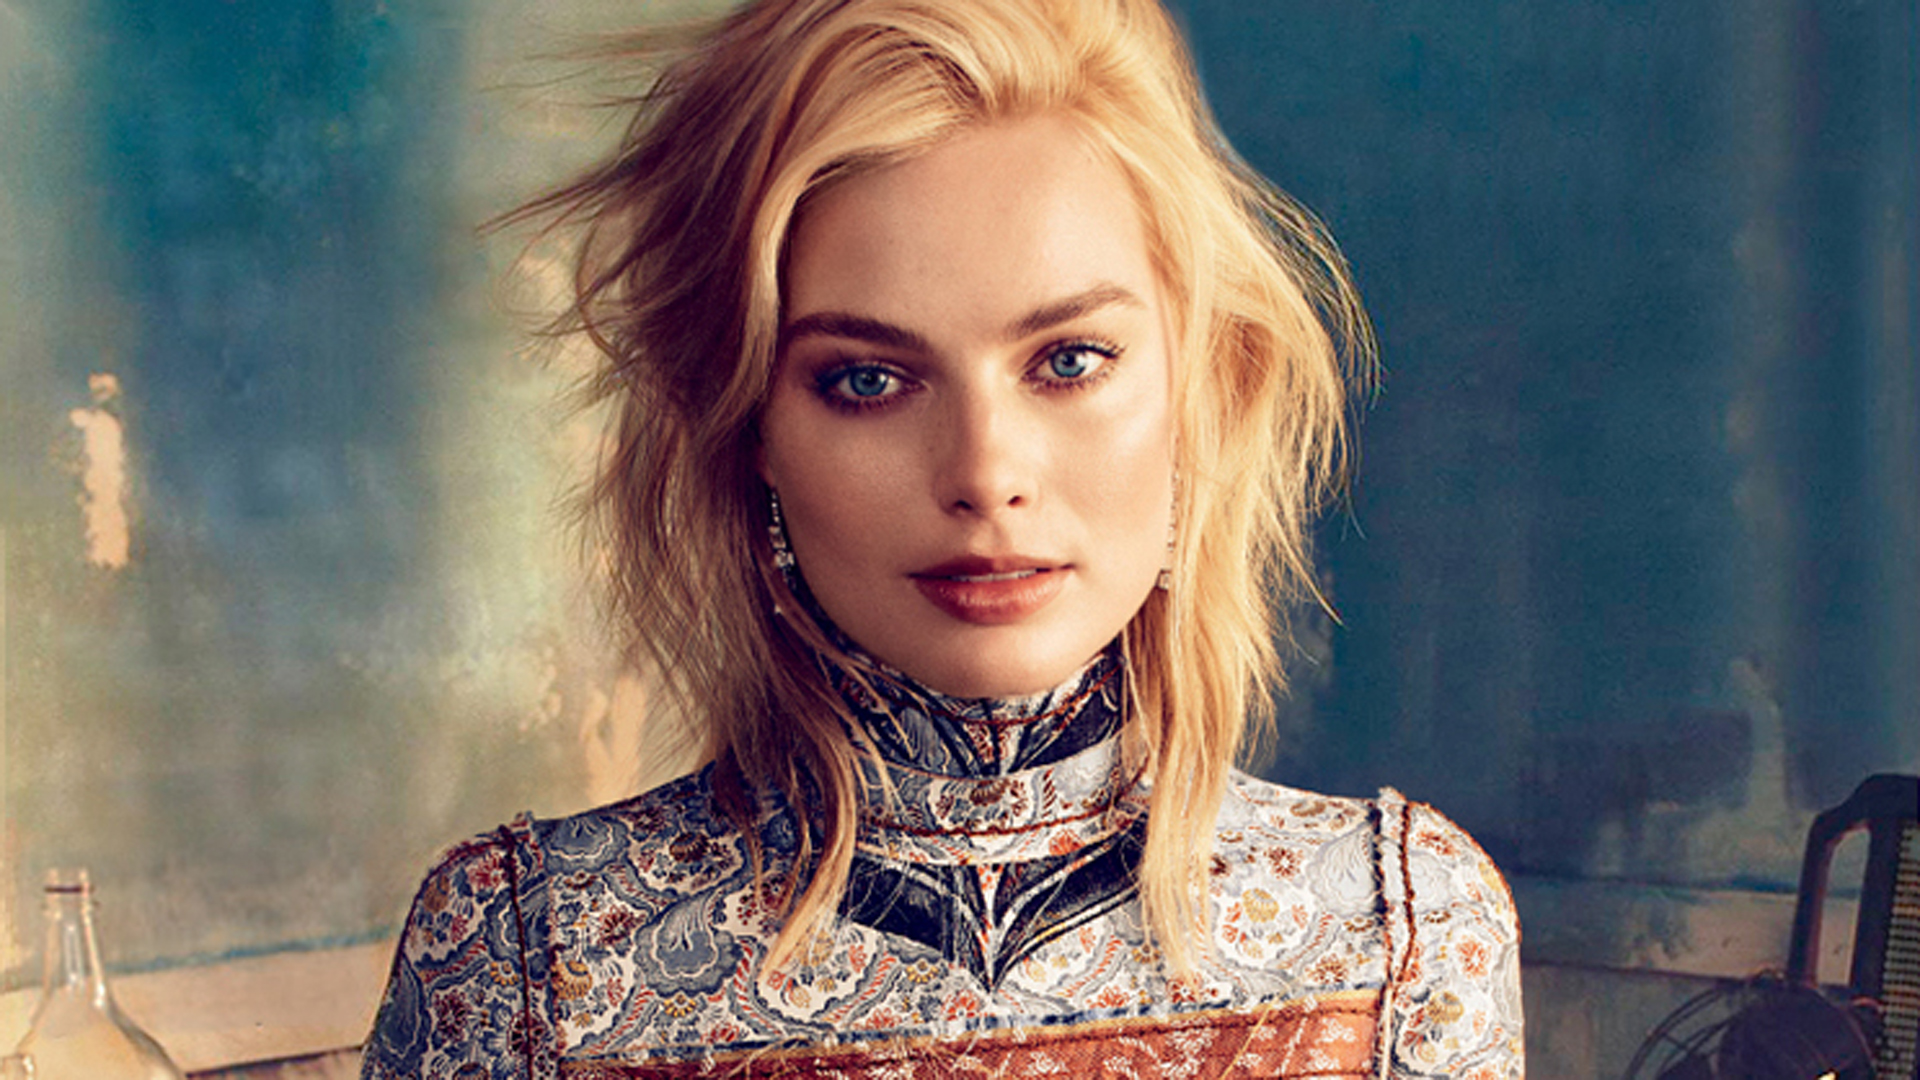 Margot Robbie Wallpaper Hd 1920x1080 Download Hd Wallpaper Wallpapertip